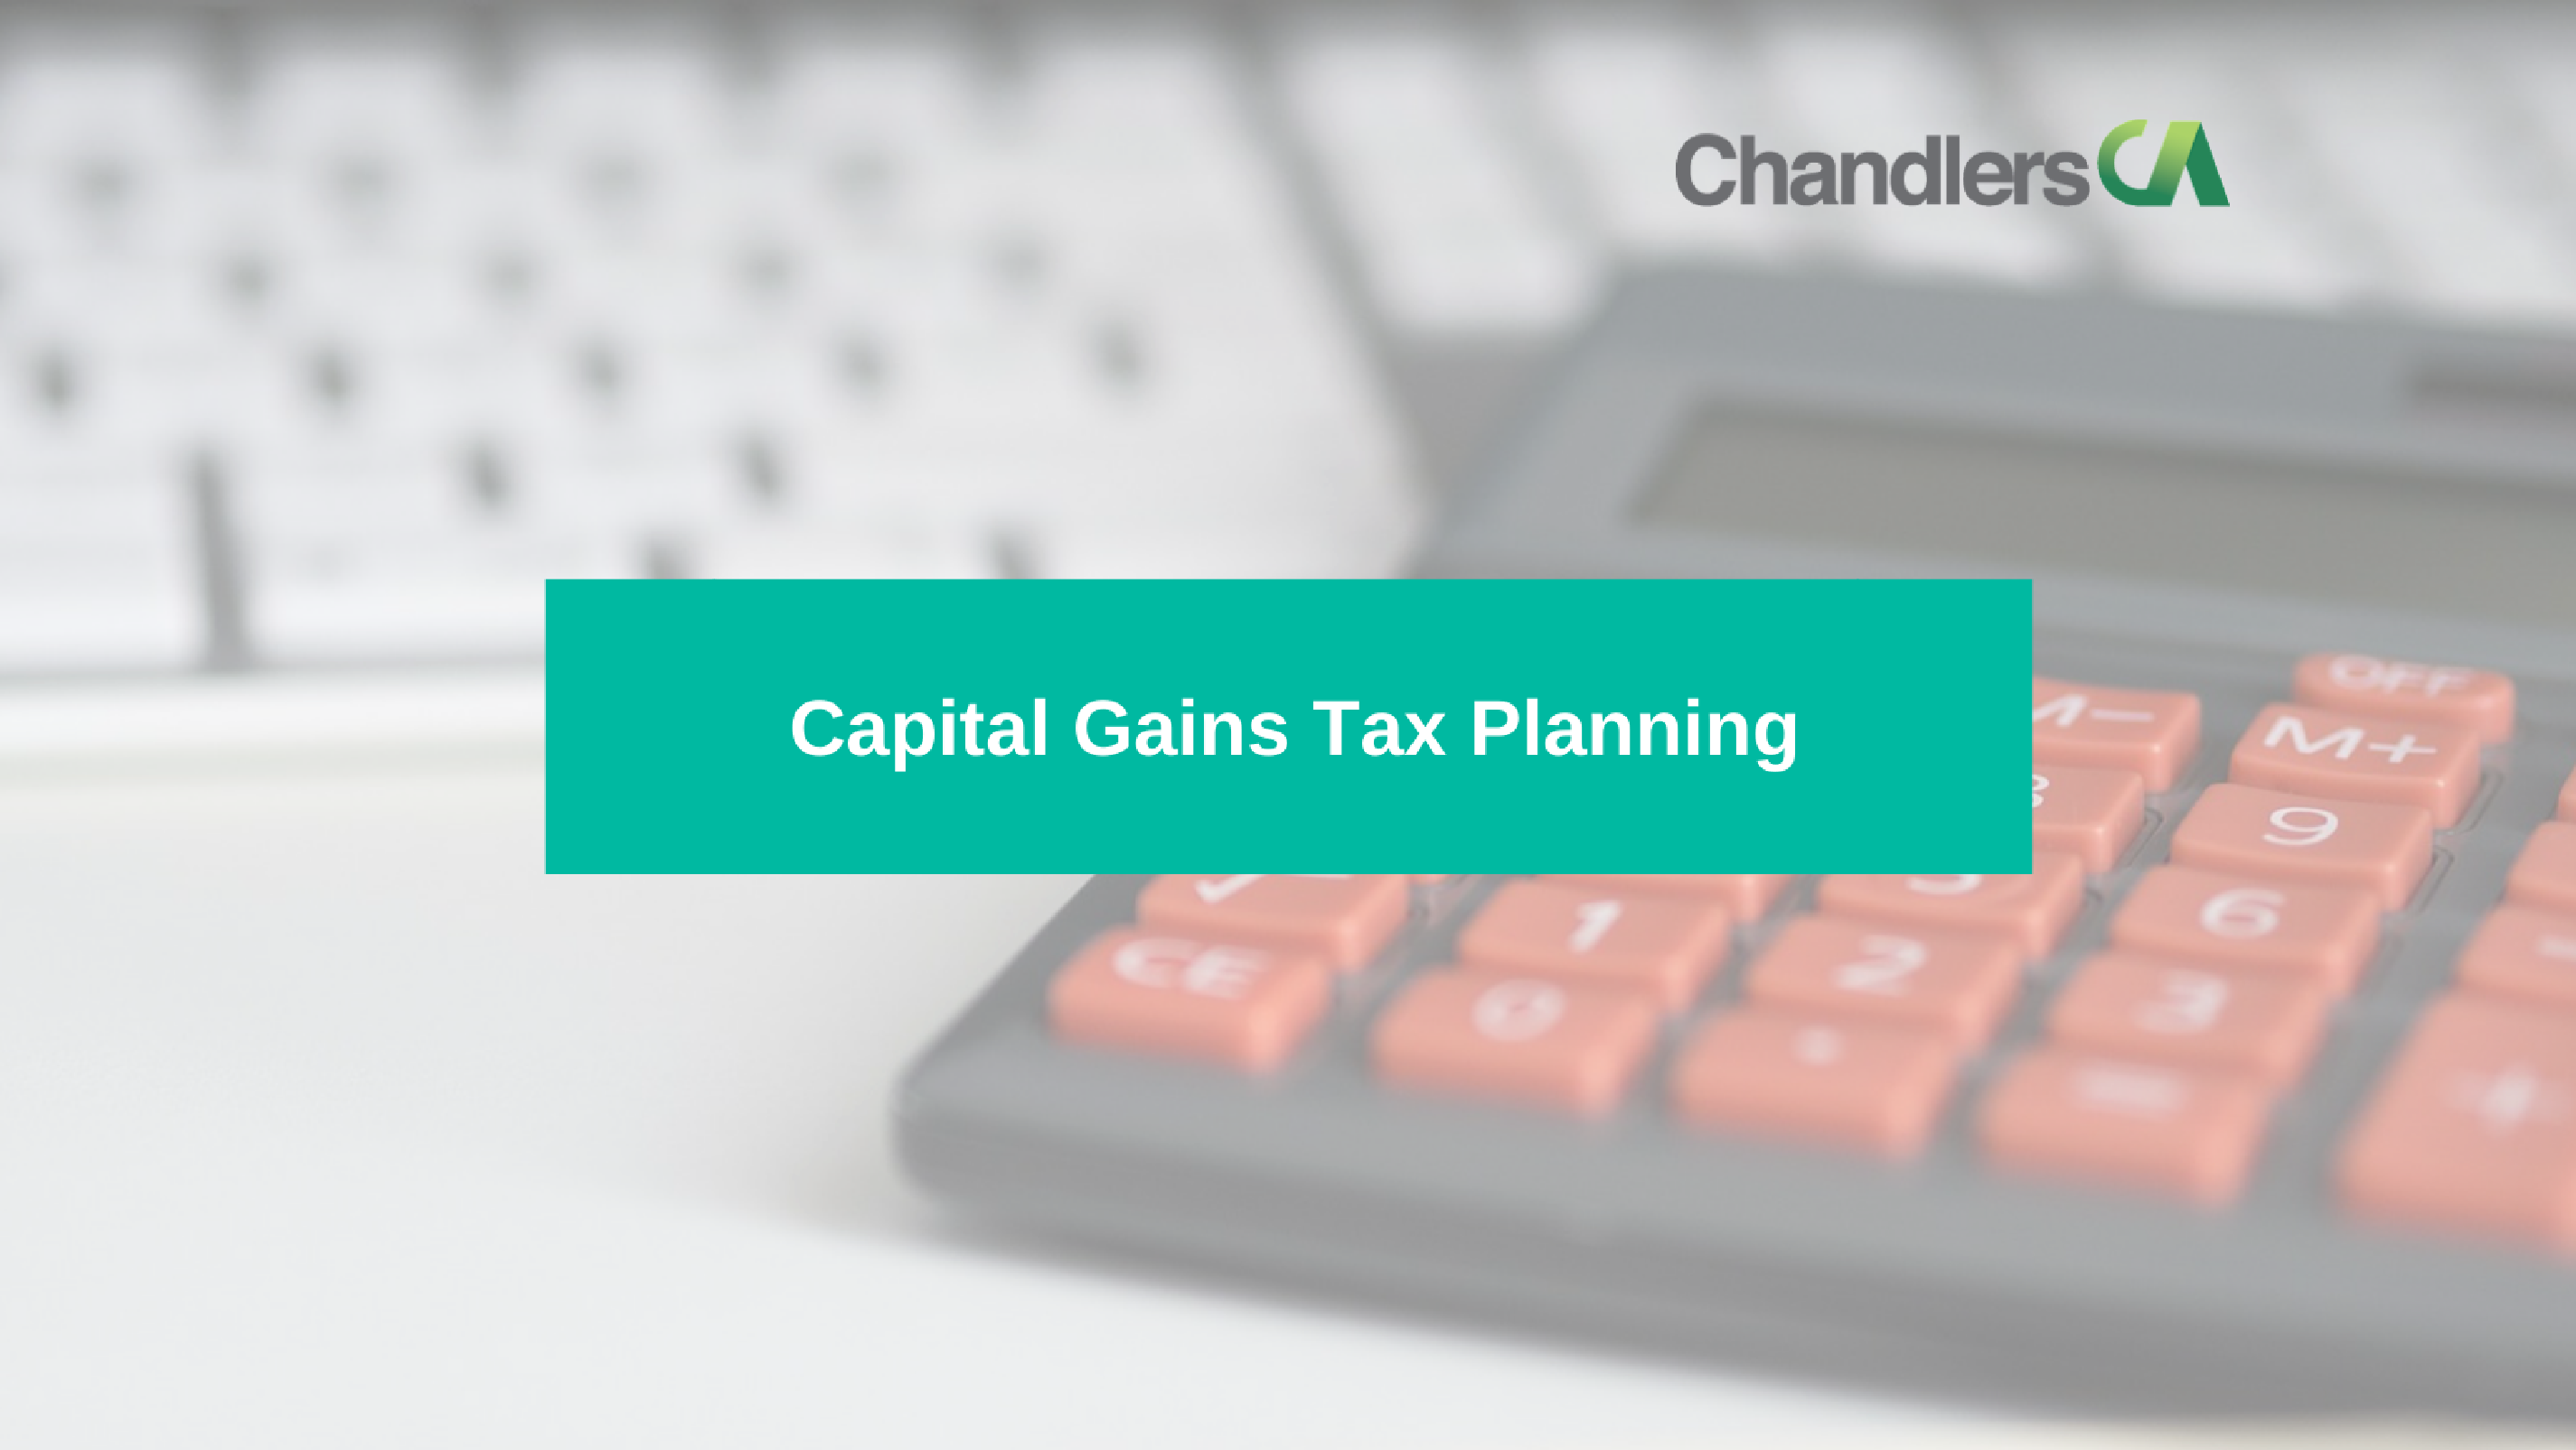 Guide to Capital Gains Tax planning for 2017/18